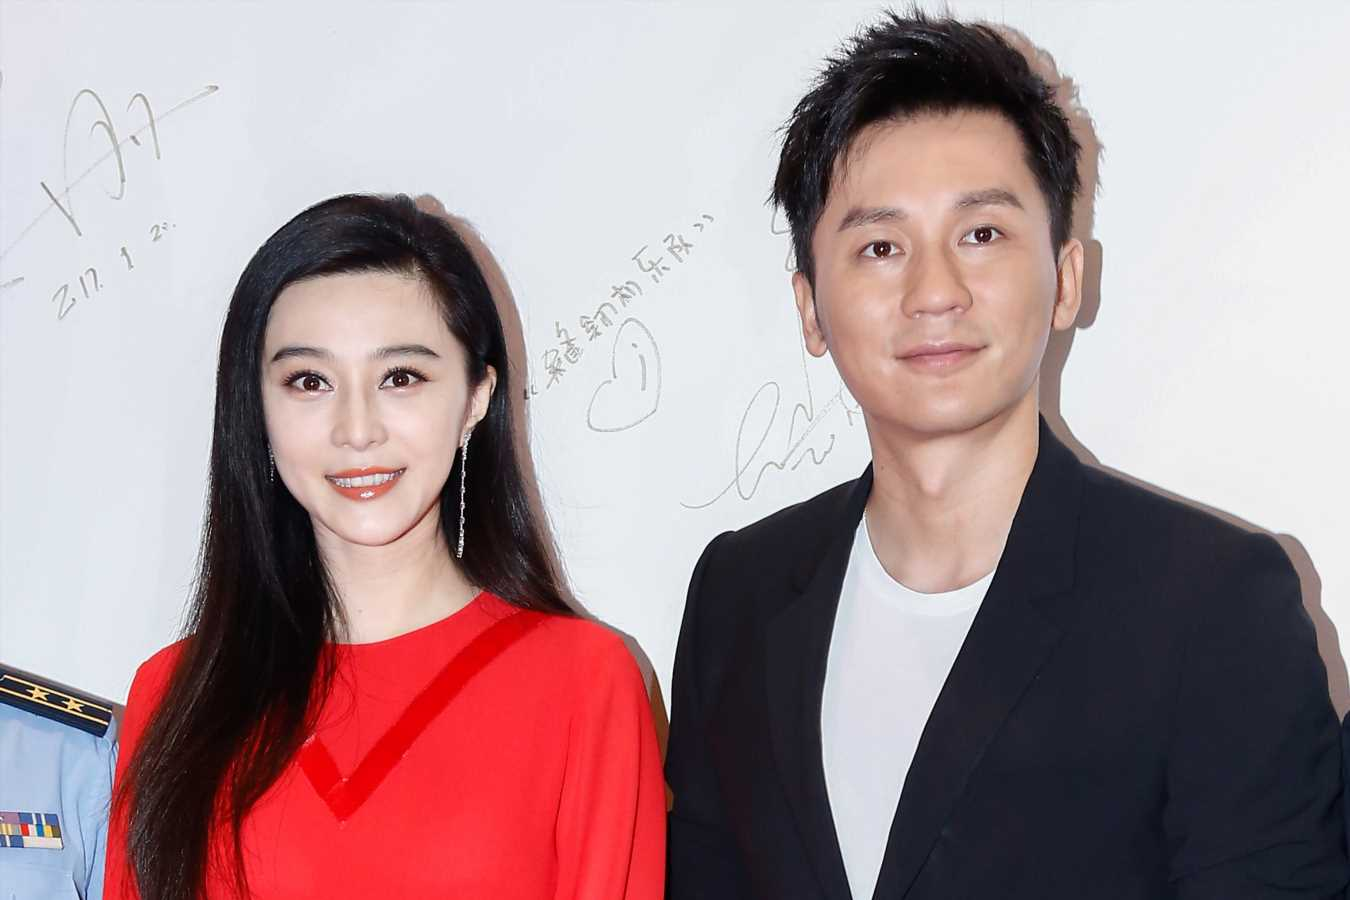 Chinese Star Fan Bingbing Announces Split from Her Fiancé Li Chen After Tax Evasion Scandal